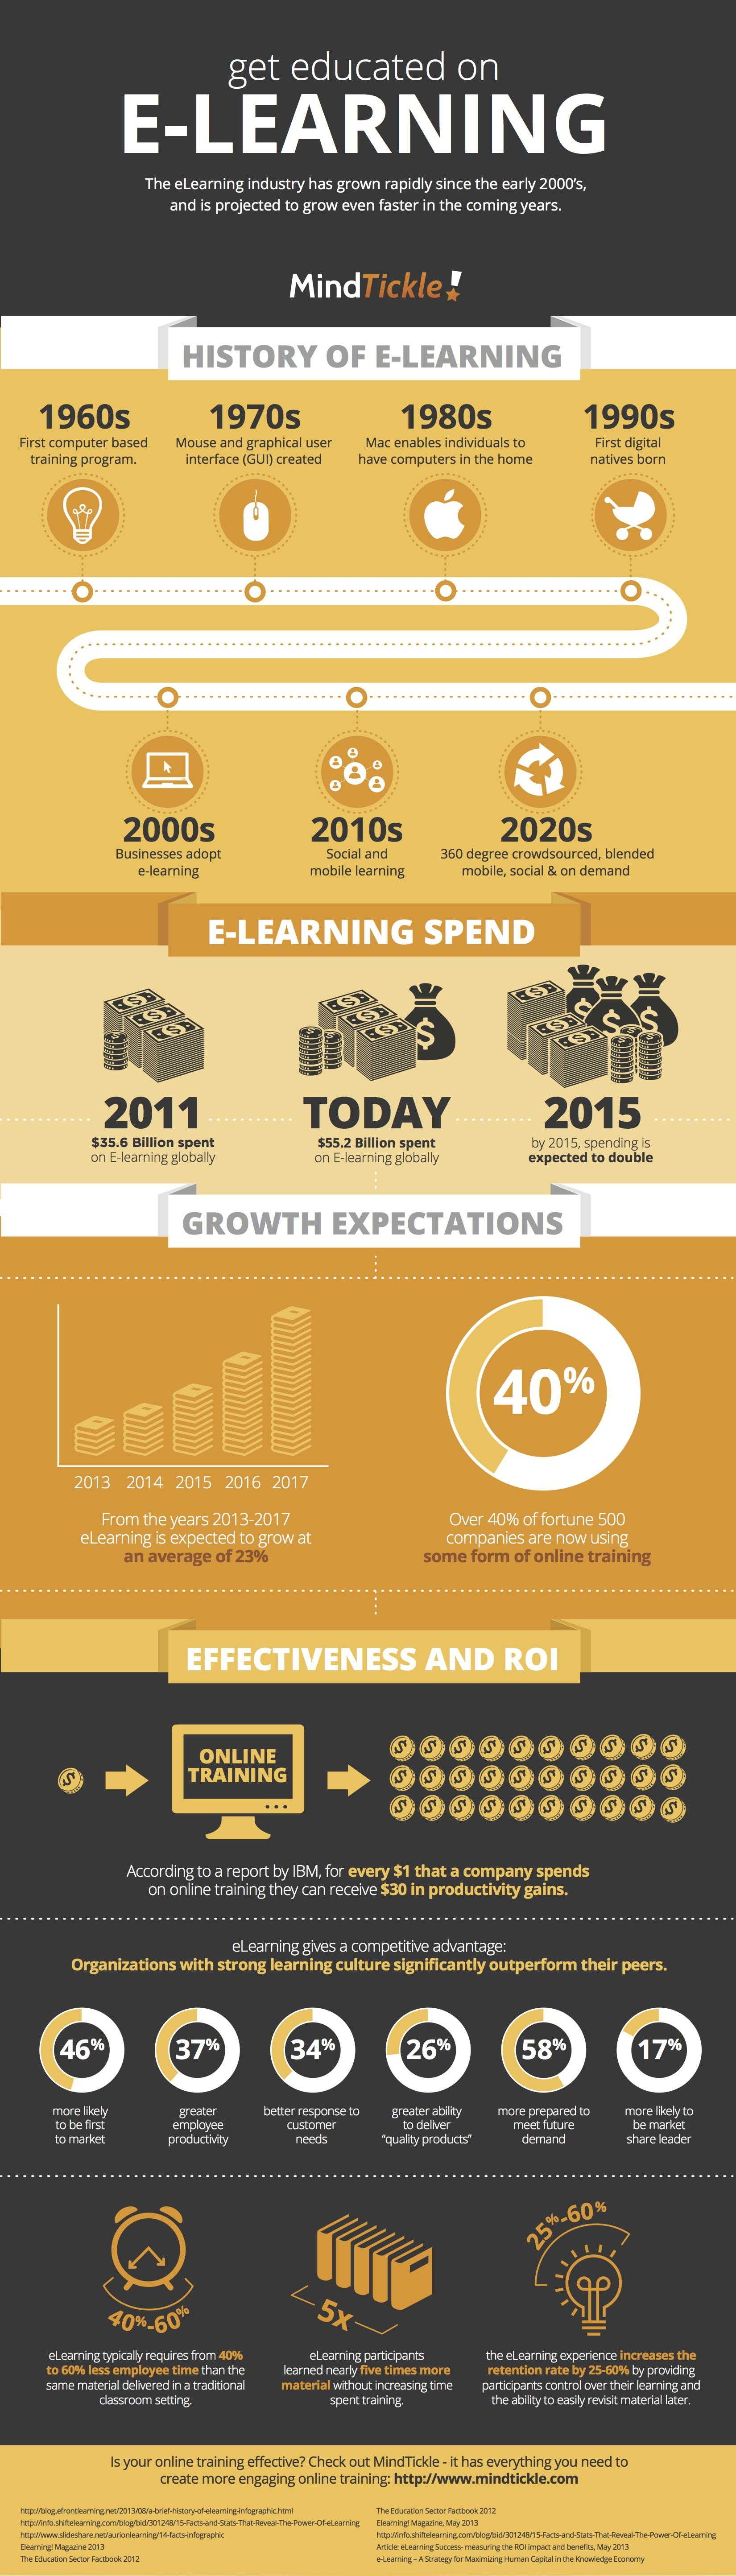 eLearning Infographic of History